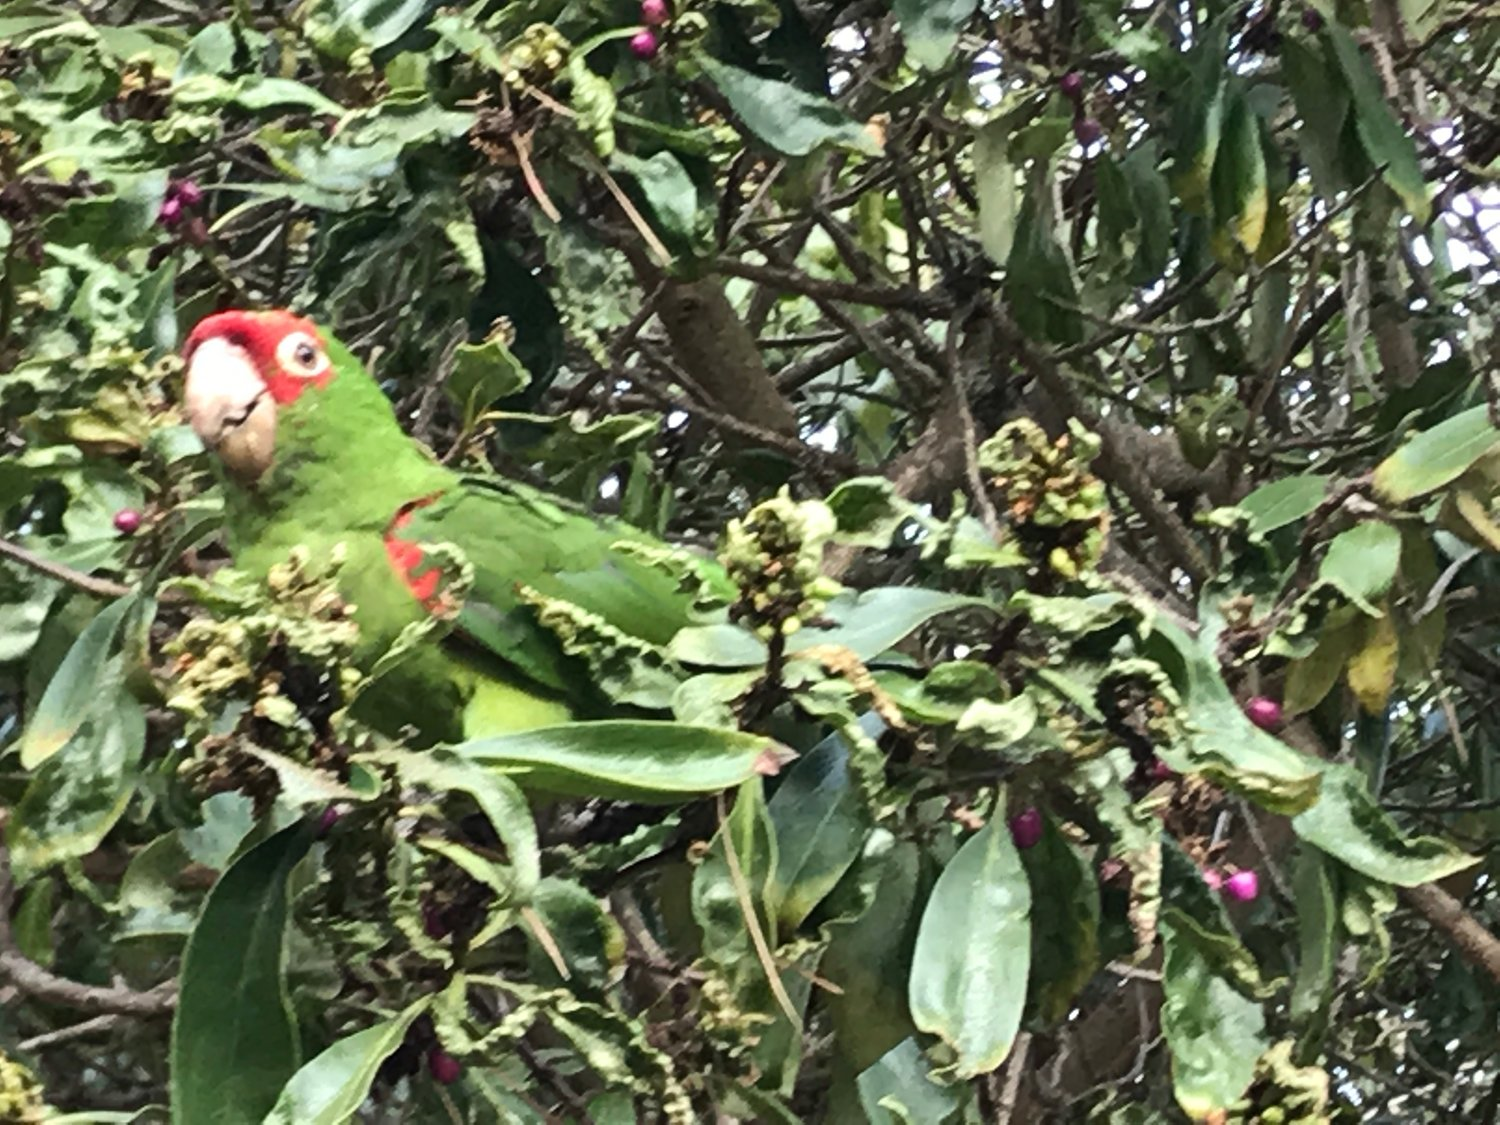 Wild Parrot in San Francisco